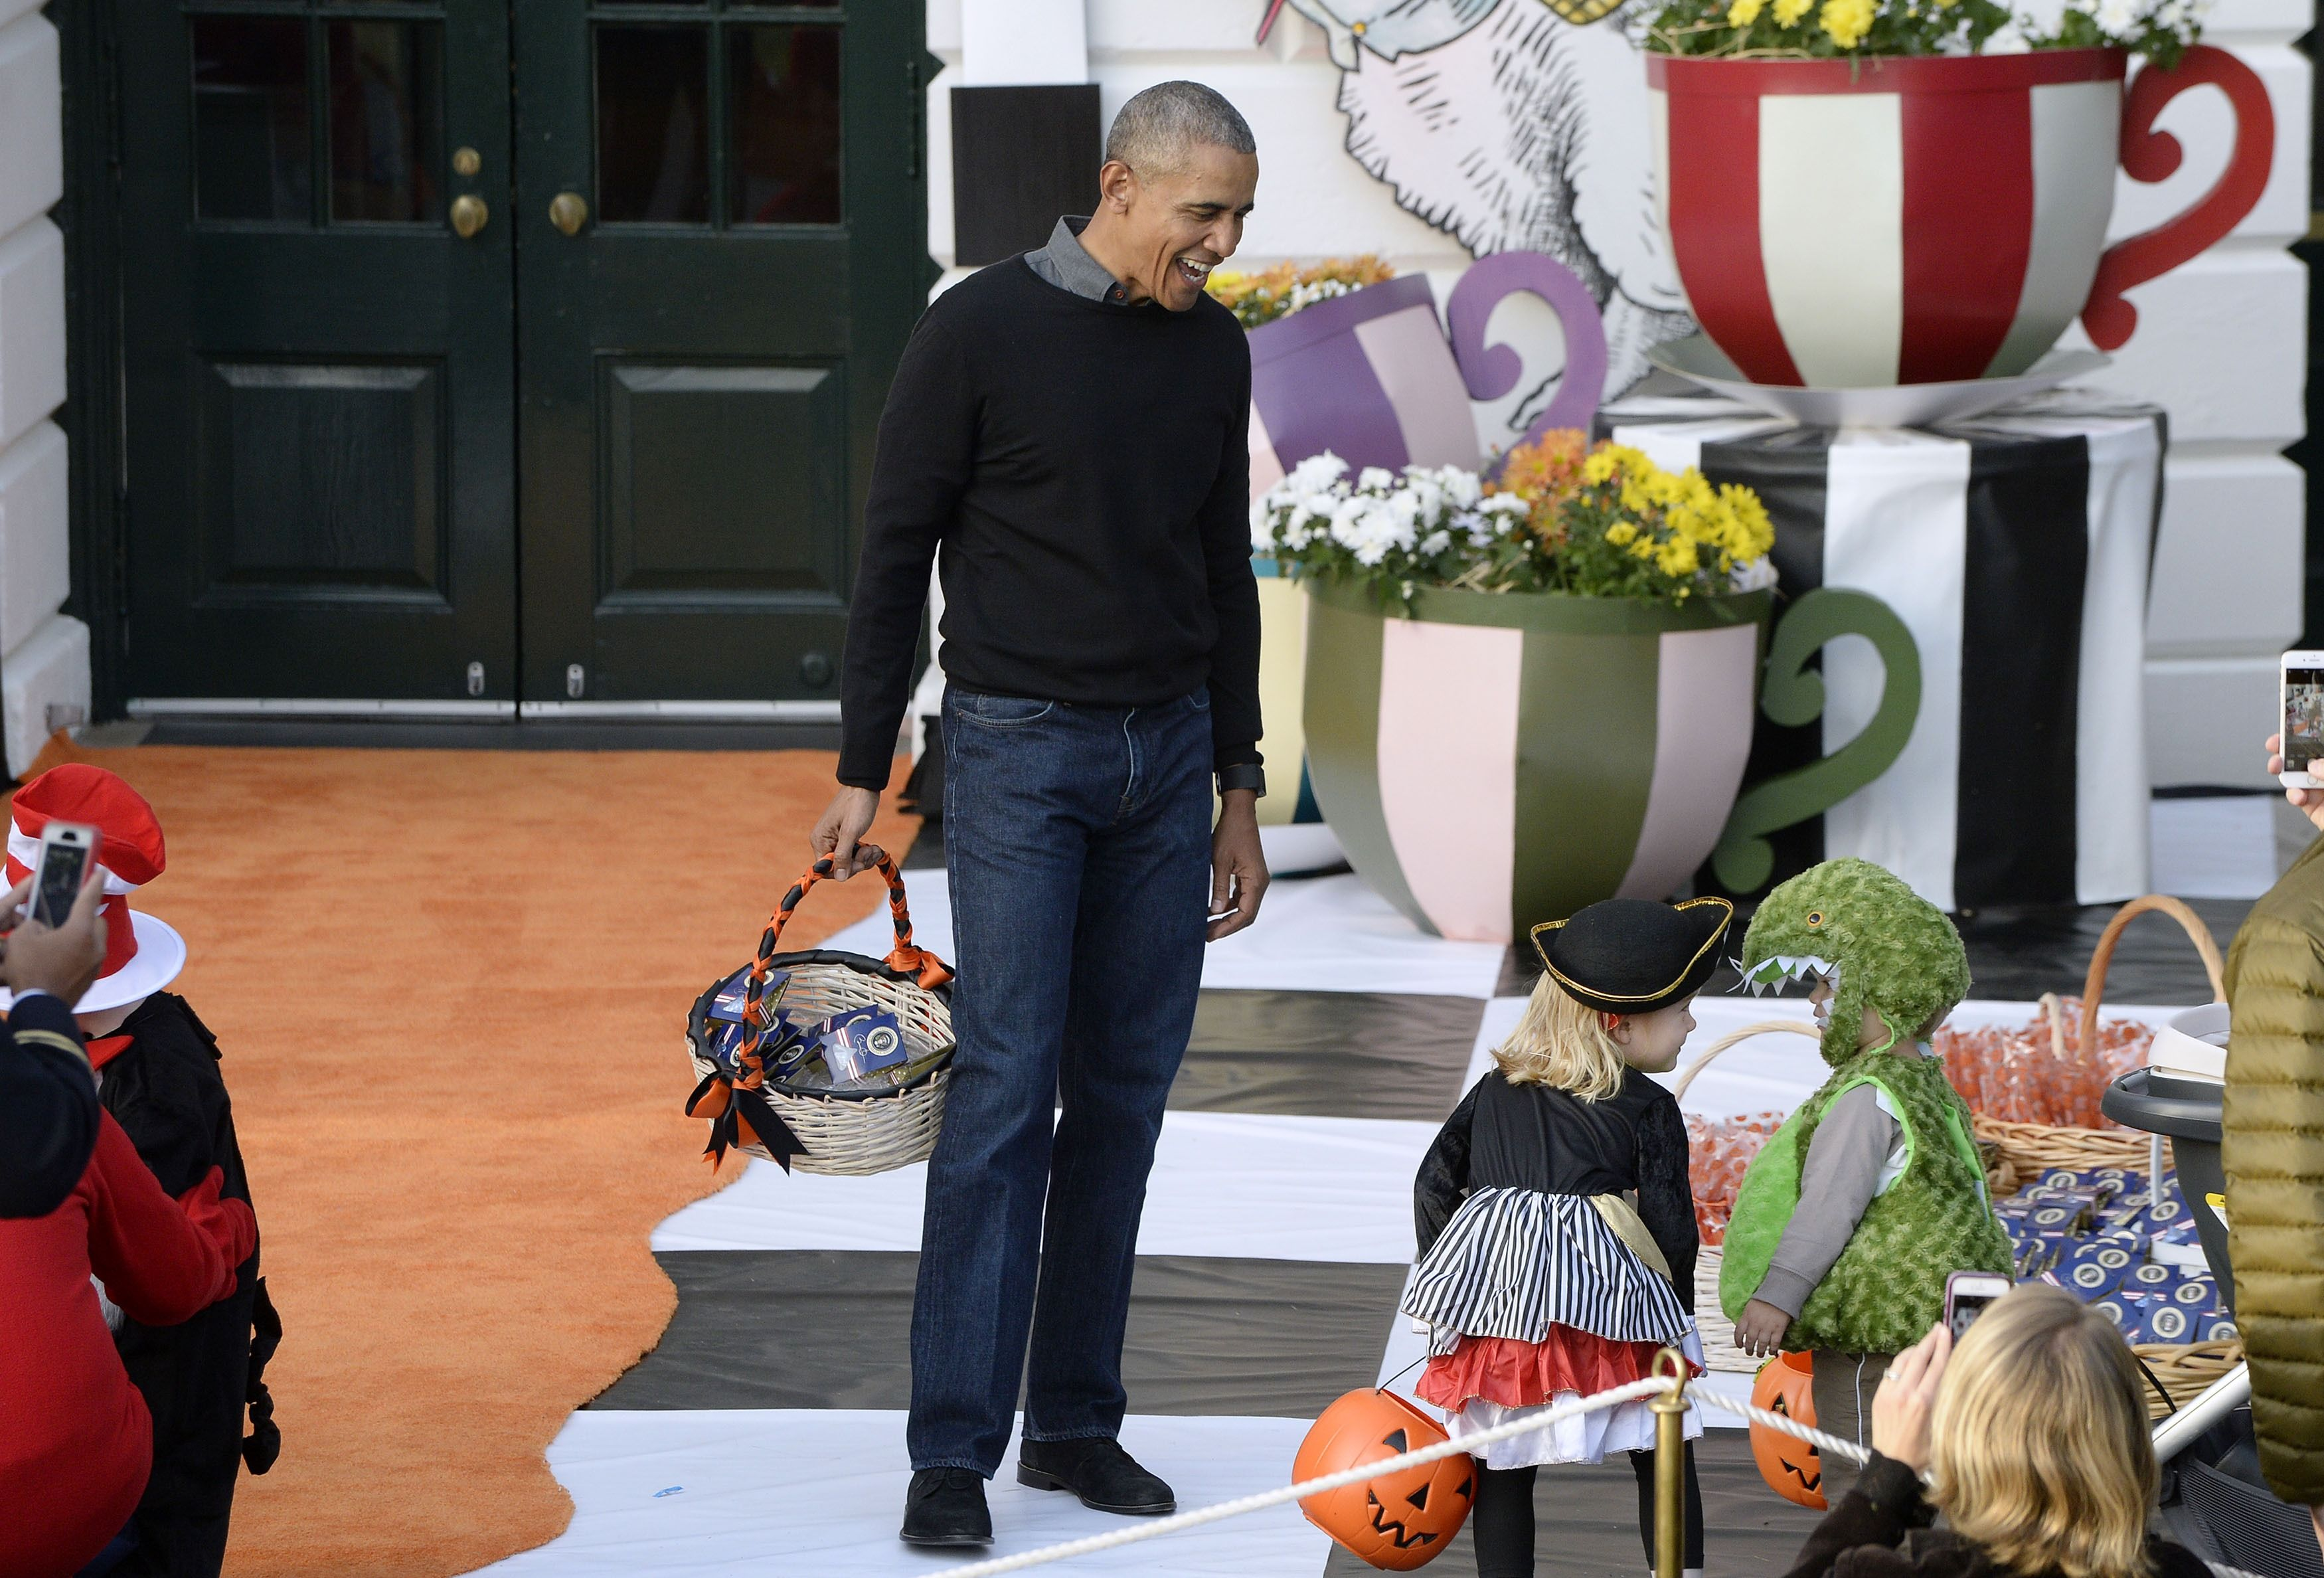 President Barack Obama at a Halloween event at the White House October 31, 2016 in Washington, D.C.